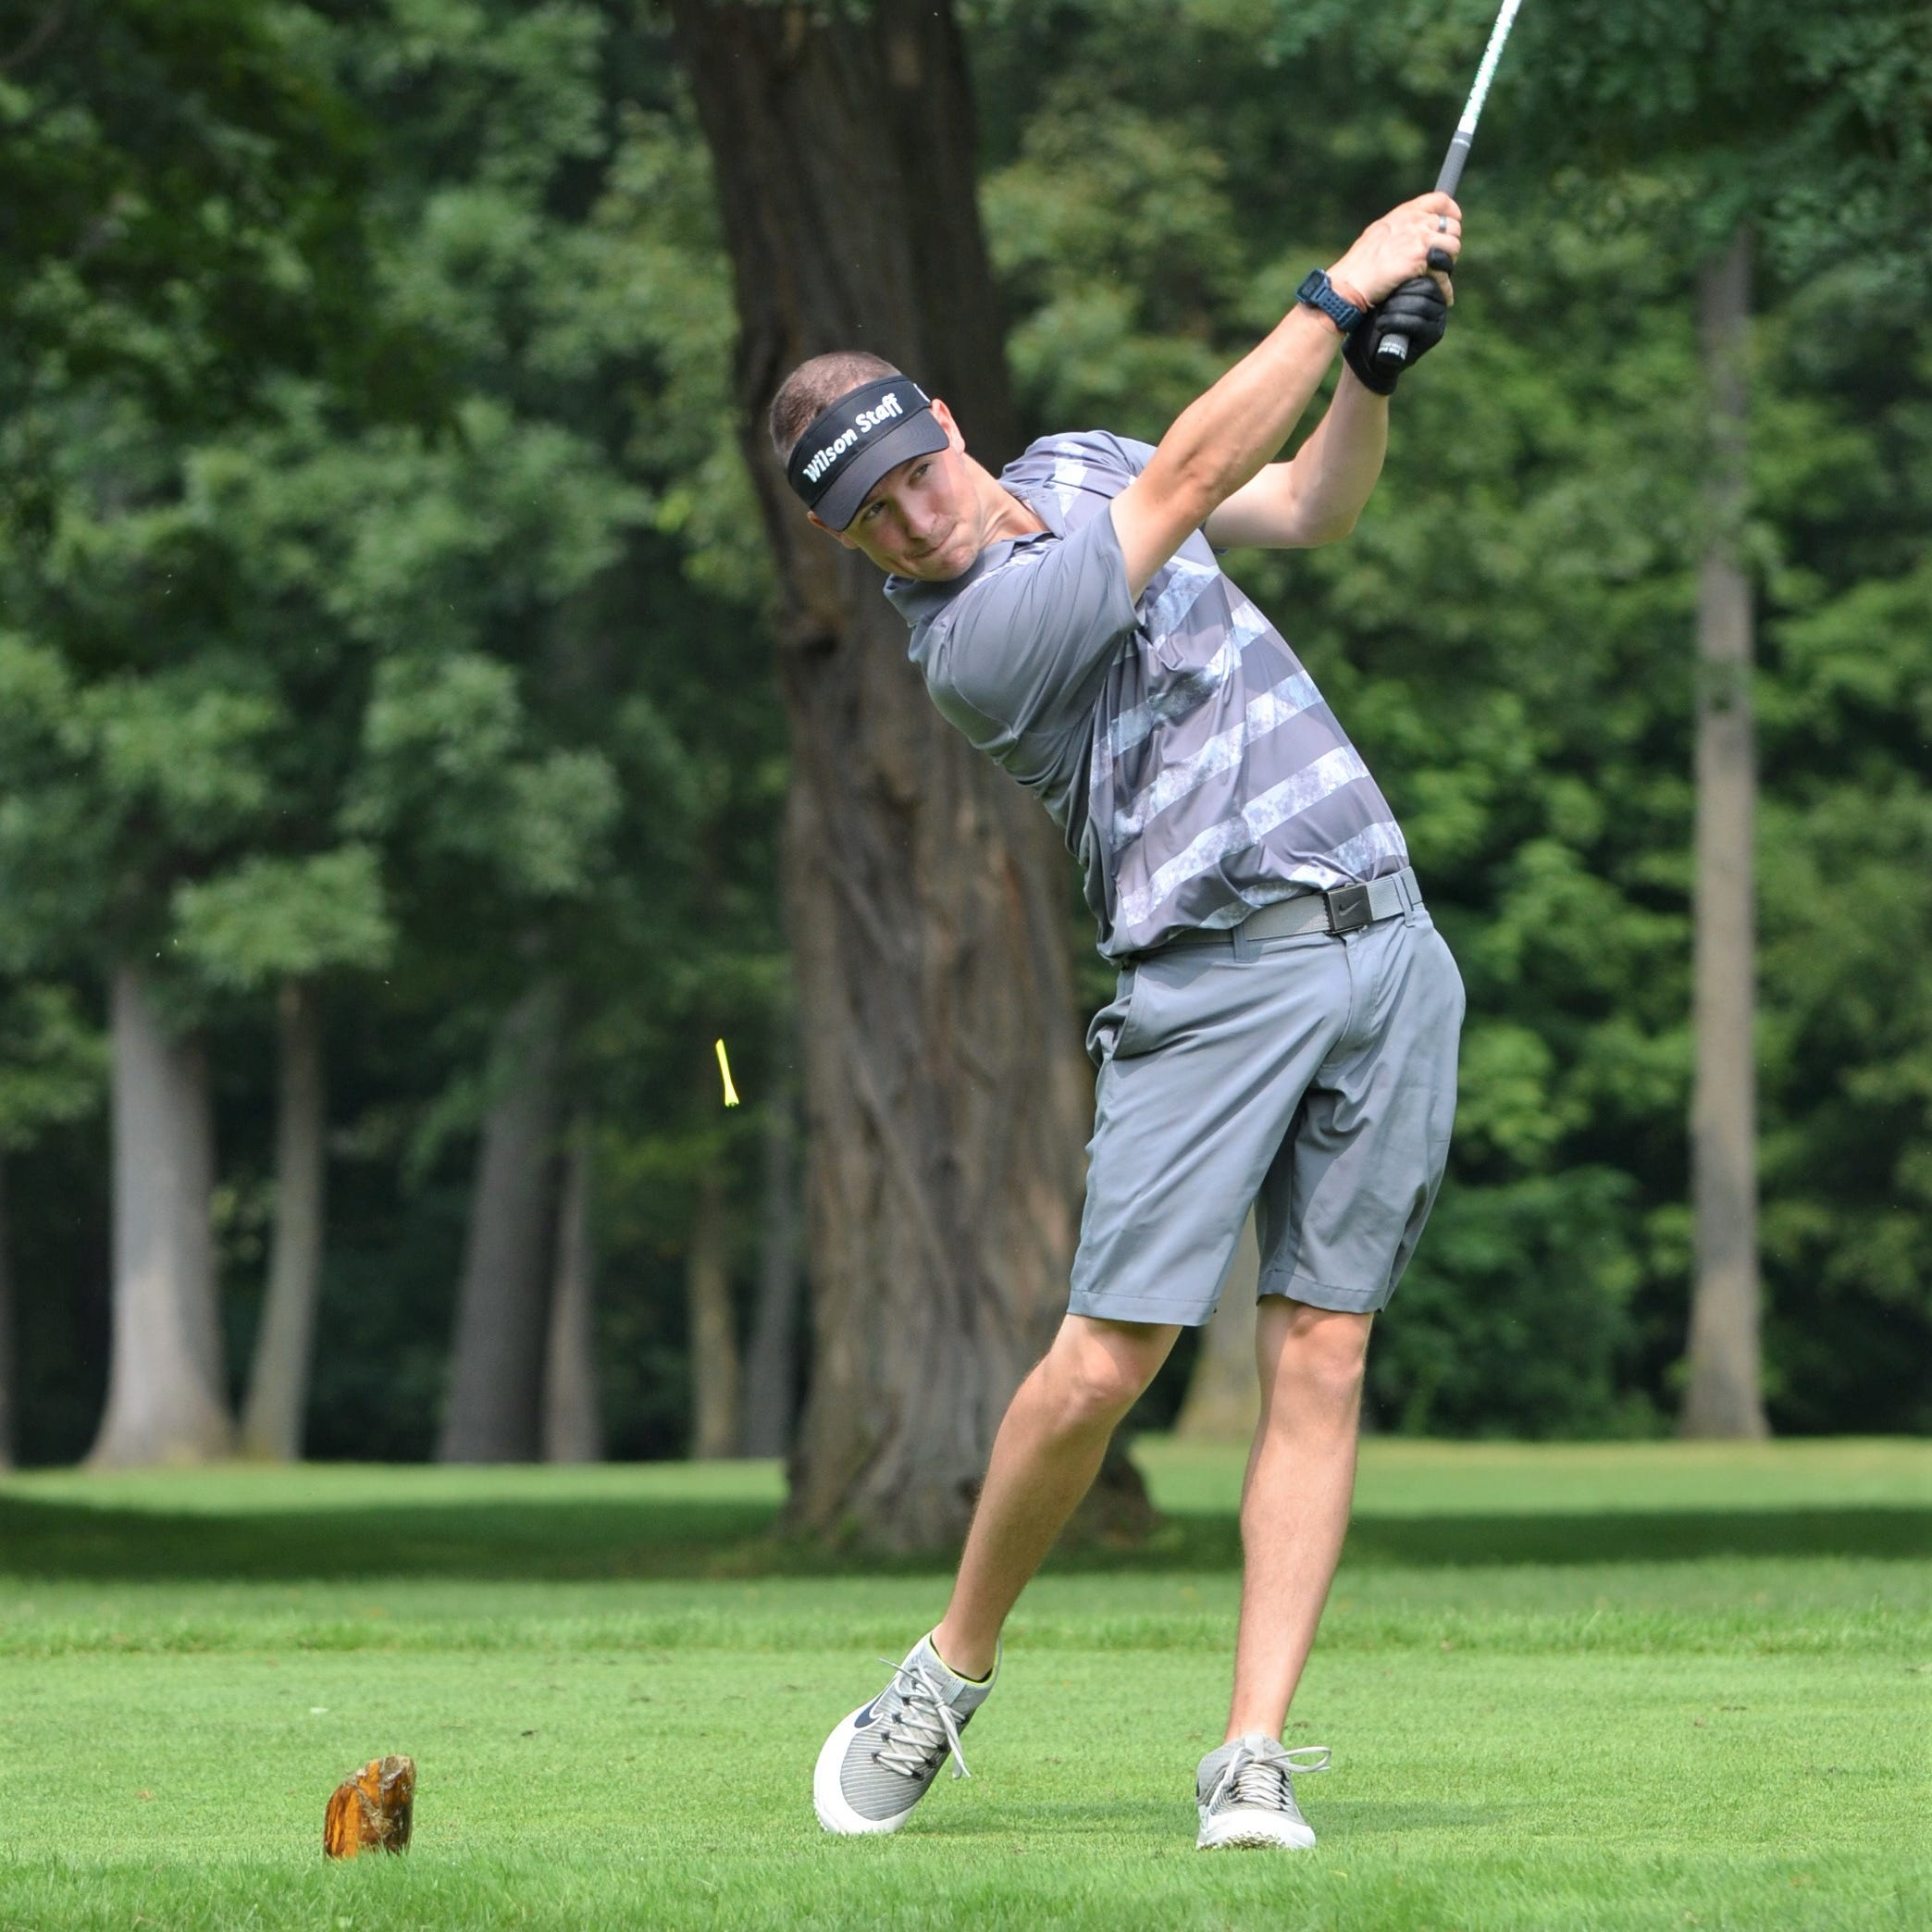 Trio of former Lakeview standouts among leaders after 1st round of Cal-Am golf tourney